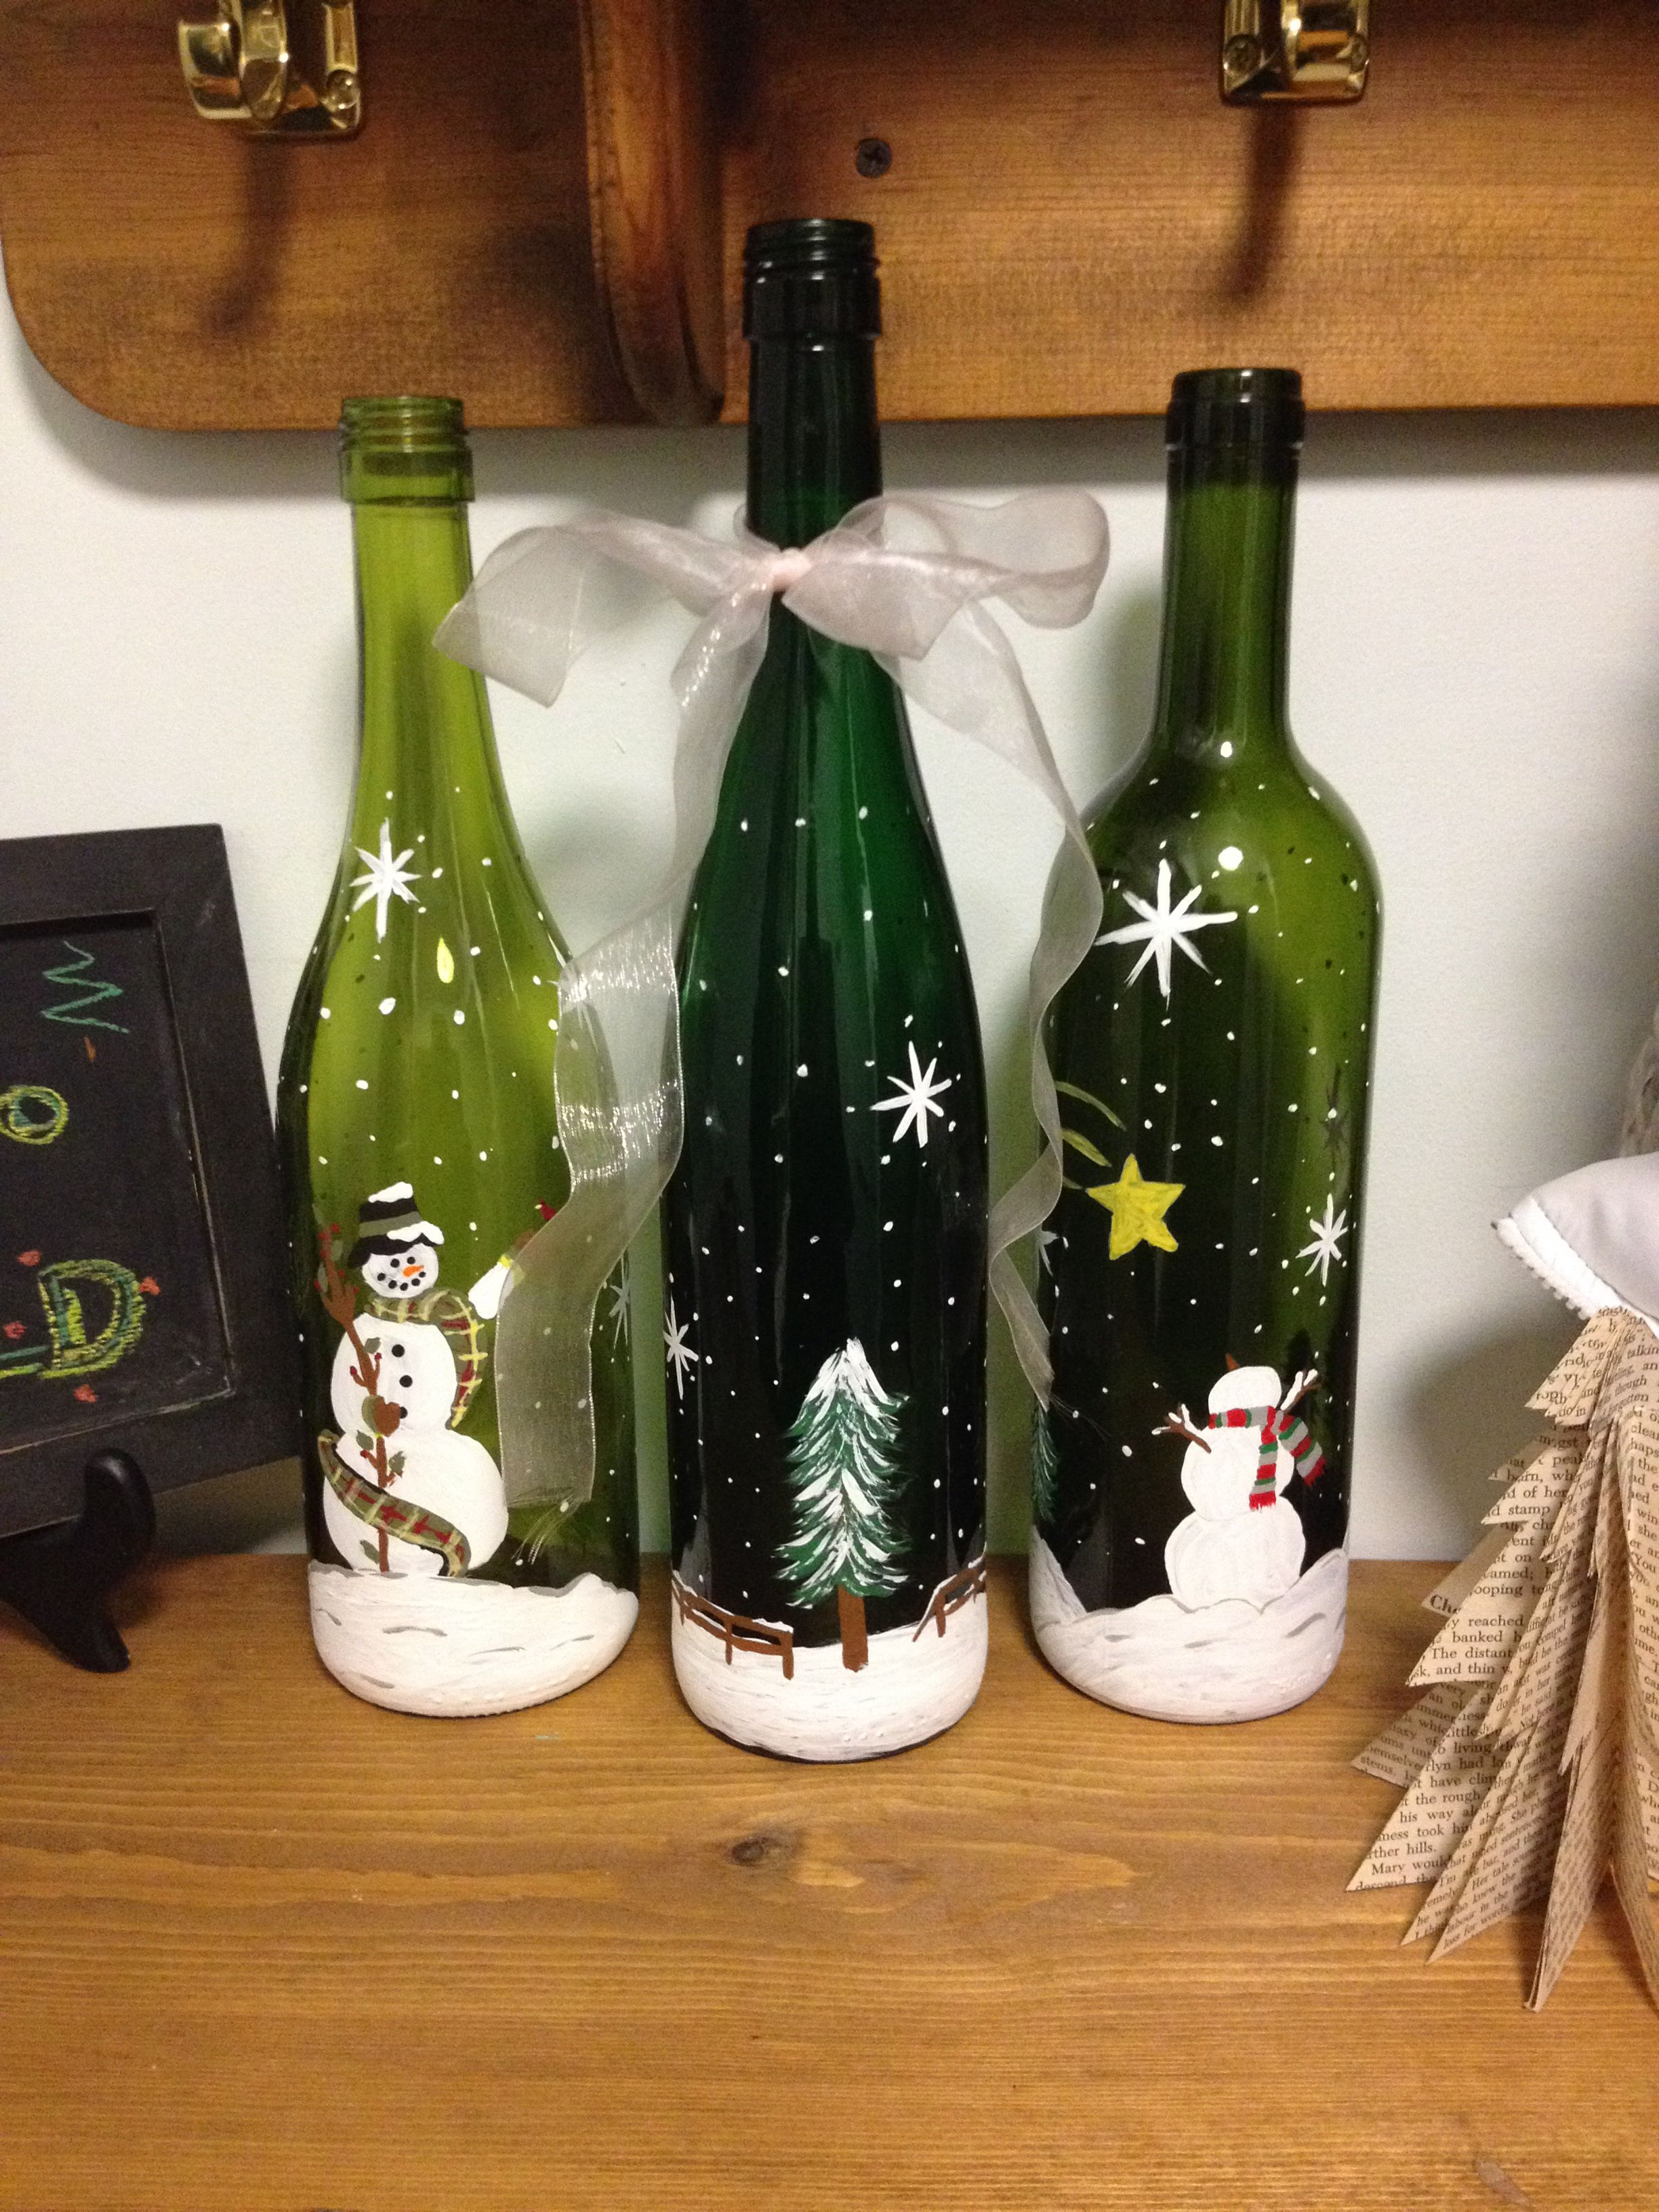 snowmen painted on wine bottles my projects pinterest weihnachten flaschen und. Black Bedroom Furniture Sets. Home Design Ideas